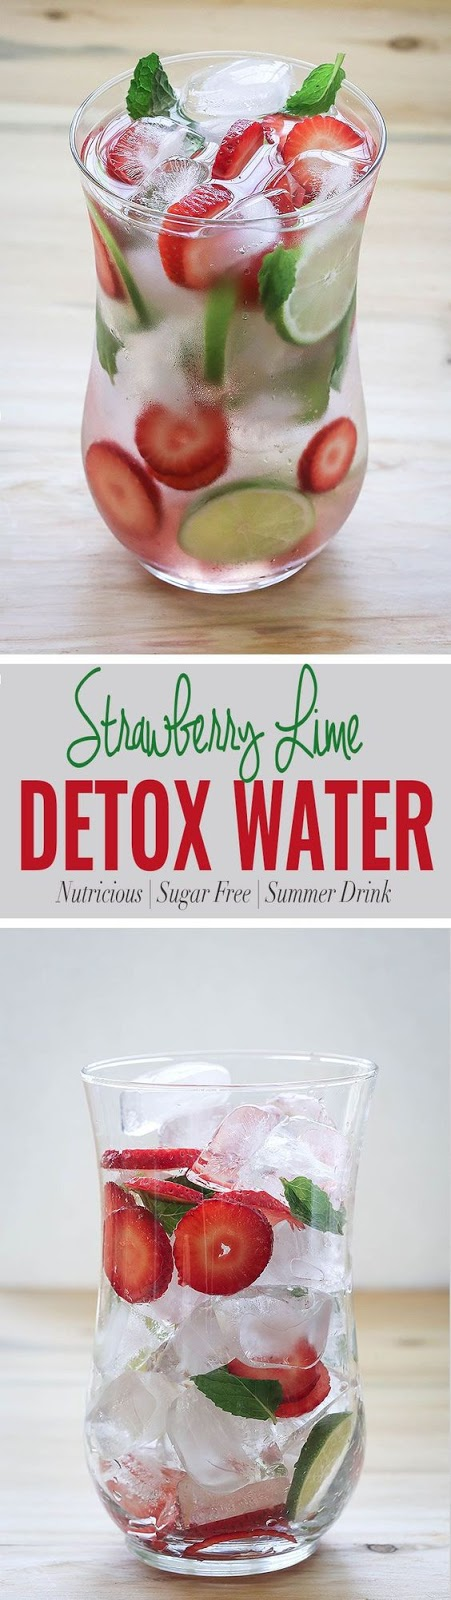 Detox Strawberry Water Drink - Healthy Recipes